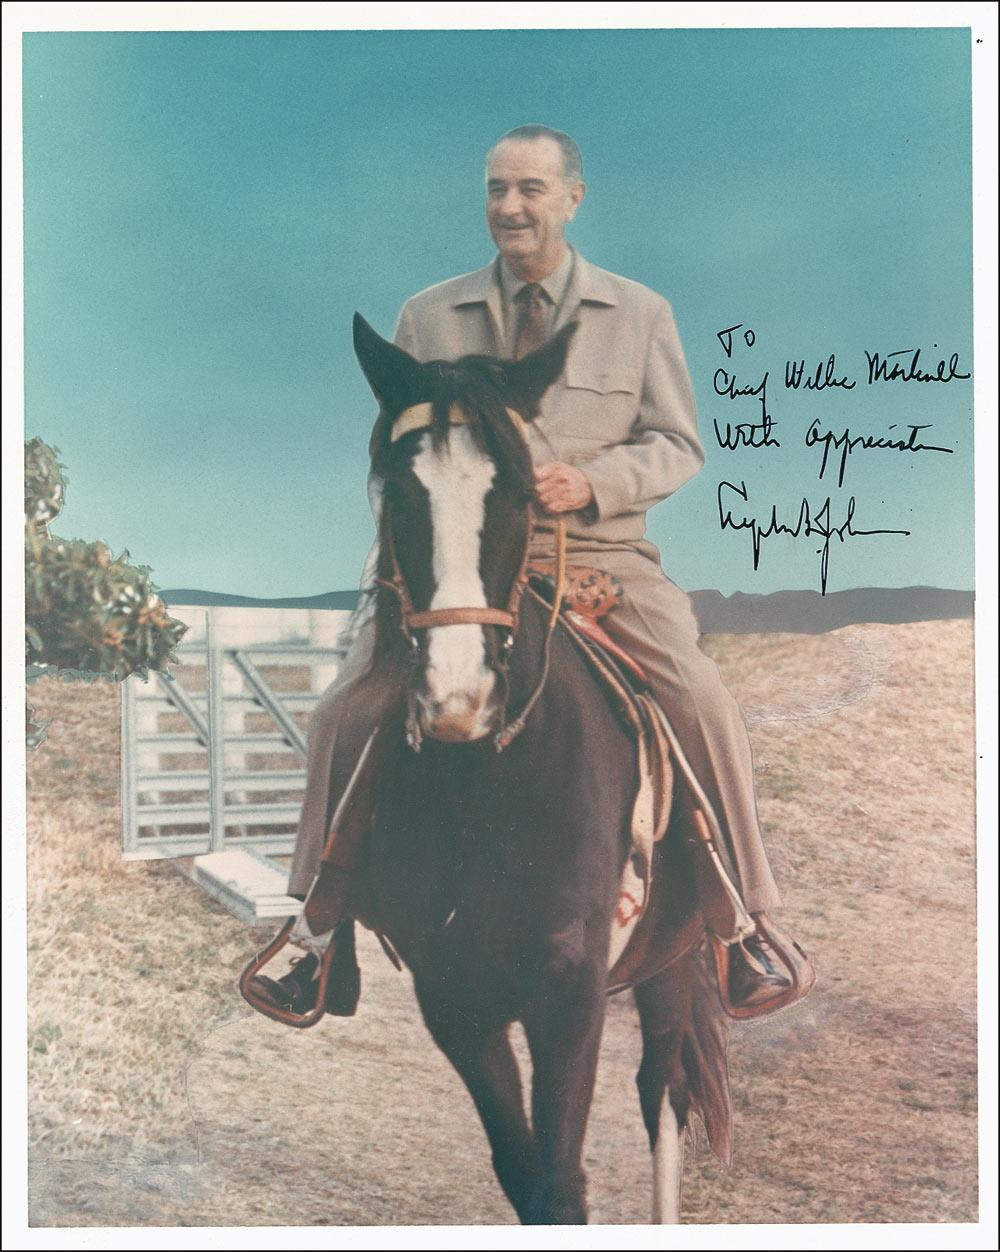 lyndon online dating Lyndon b johnson state park & historic site join the texas hill country  community in this special tradition started 49 years ago by president and mrs.